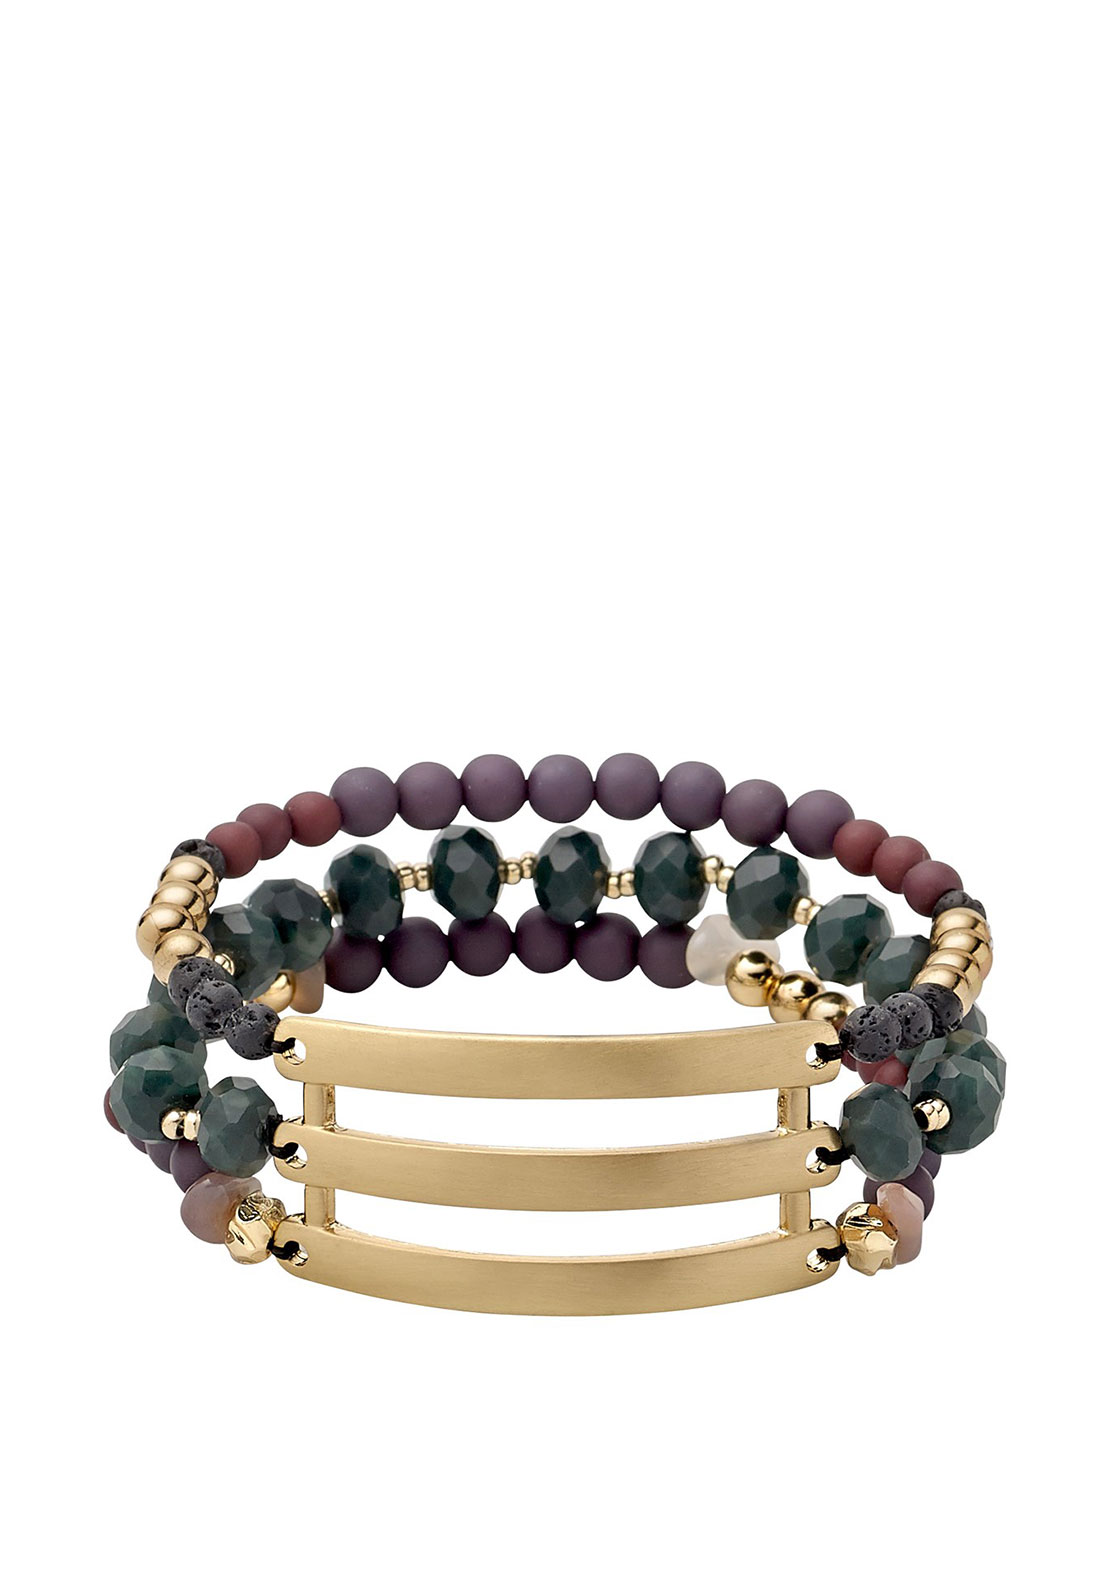 Pilgrim Substance Bracelet, Green and Gold